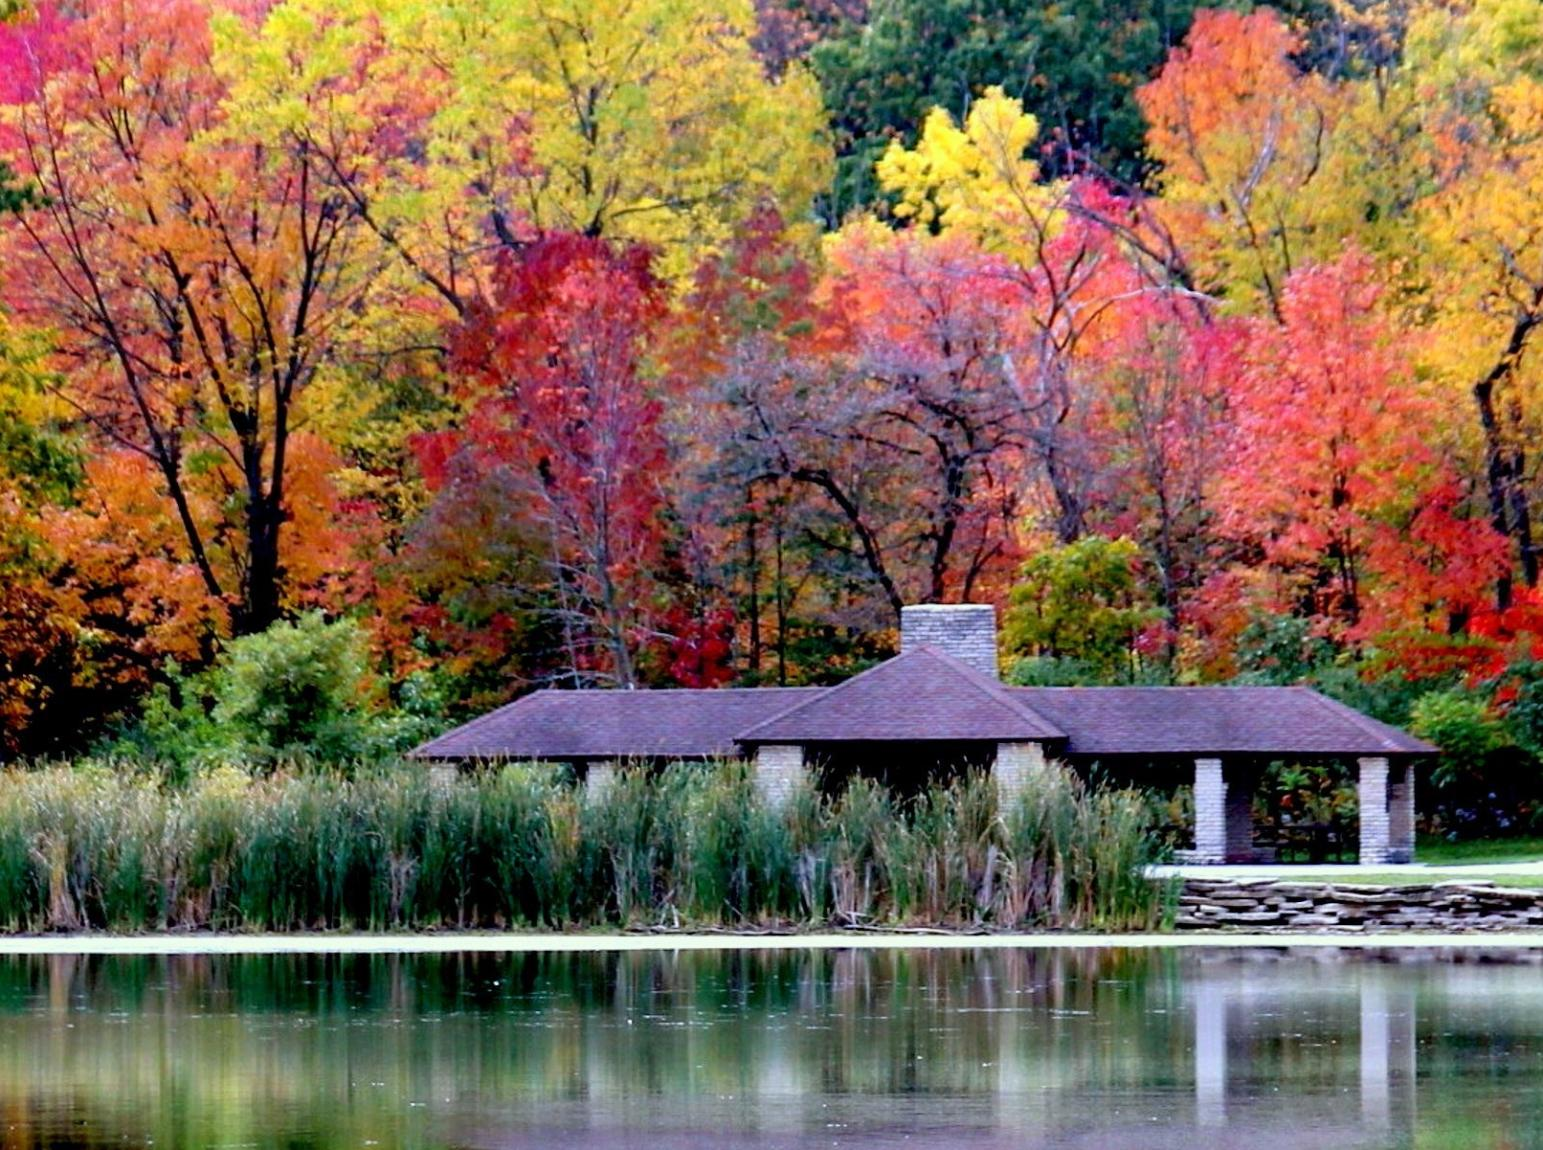 Herrick Lake Forest Preserve in fall with vibrant colors